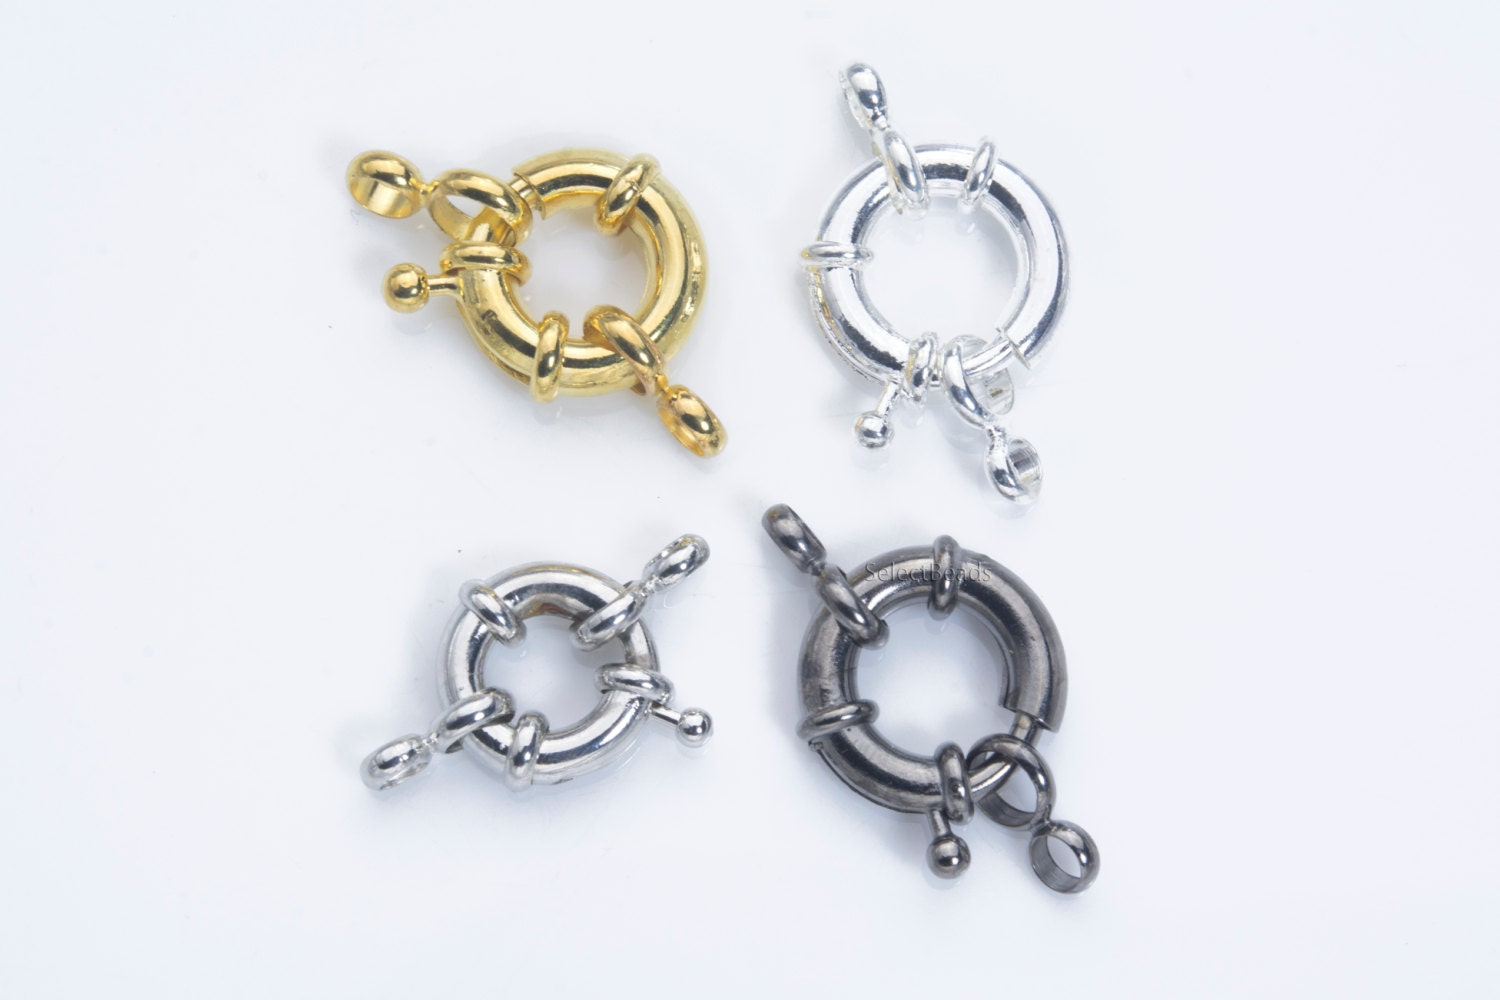 dating vintage jewelry clasps You searched for: snap clasp etsy is the home to thousands of handmade, vintage, and one-of-a-kind products related to your search no matter what you're looking for or where you are in the world, our global marketplace of sellers can help you find unique and.